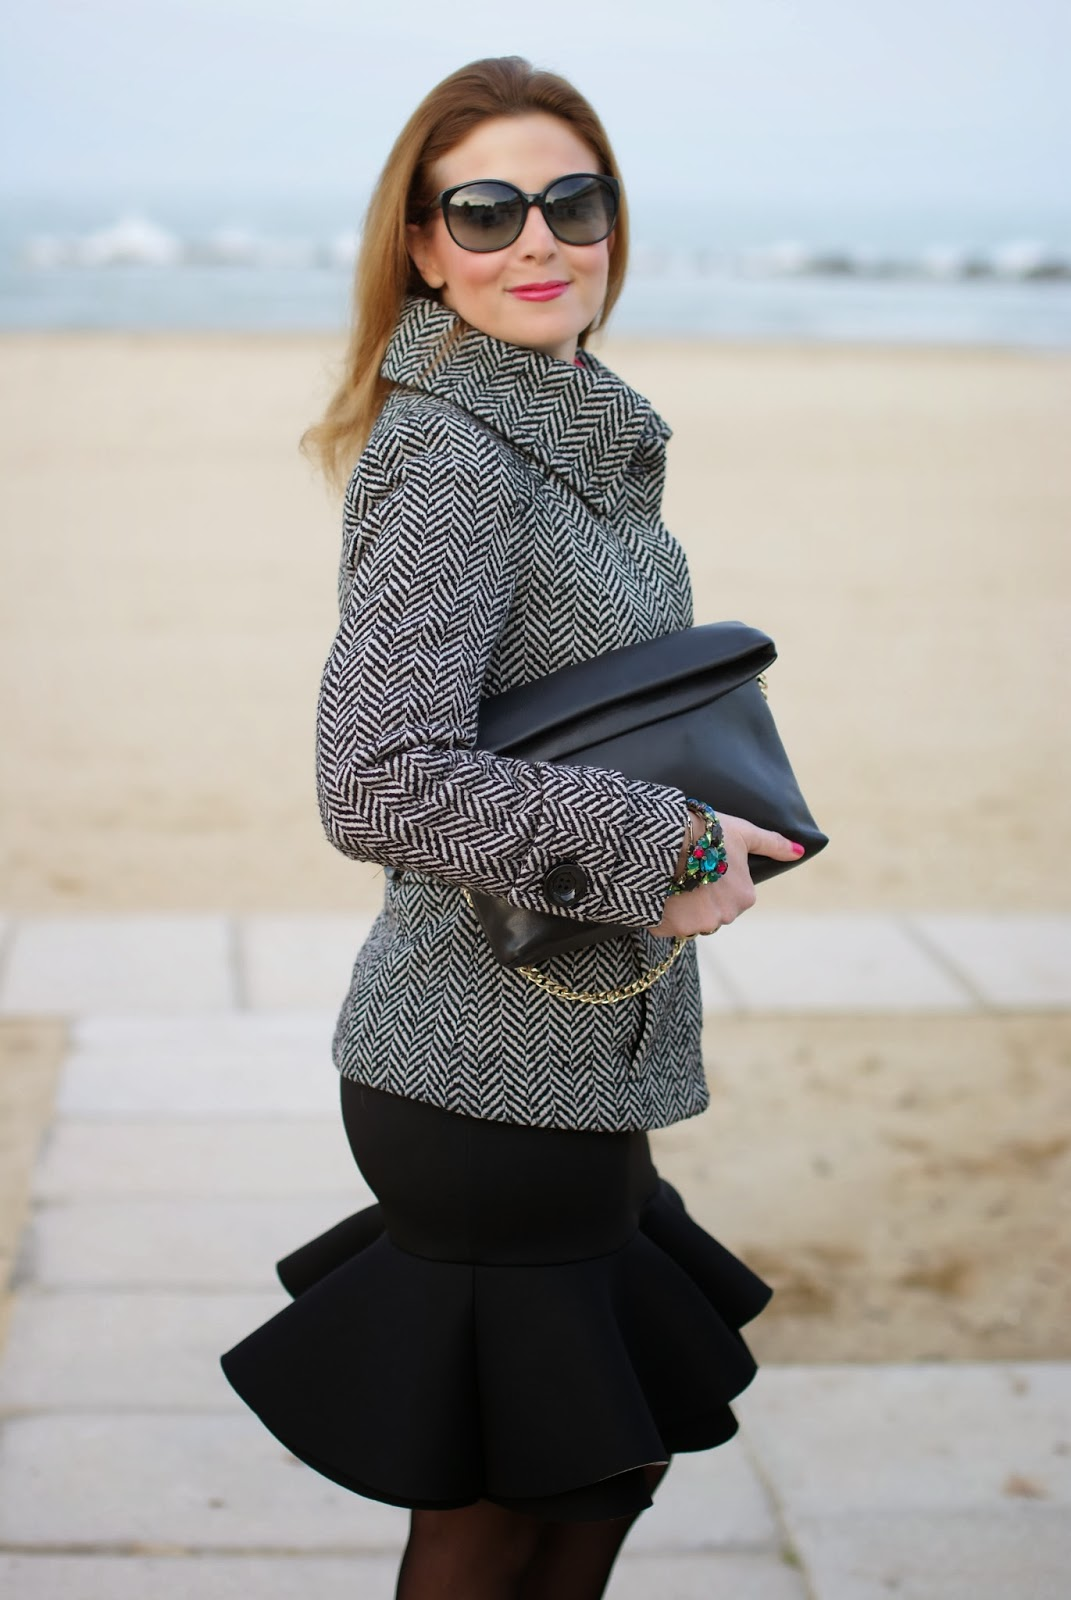 Asos peplum hem skirt, Zara twill jacket, Zara clutch, Fashion and Cookies, fashion blogger